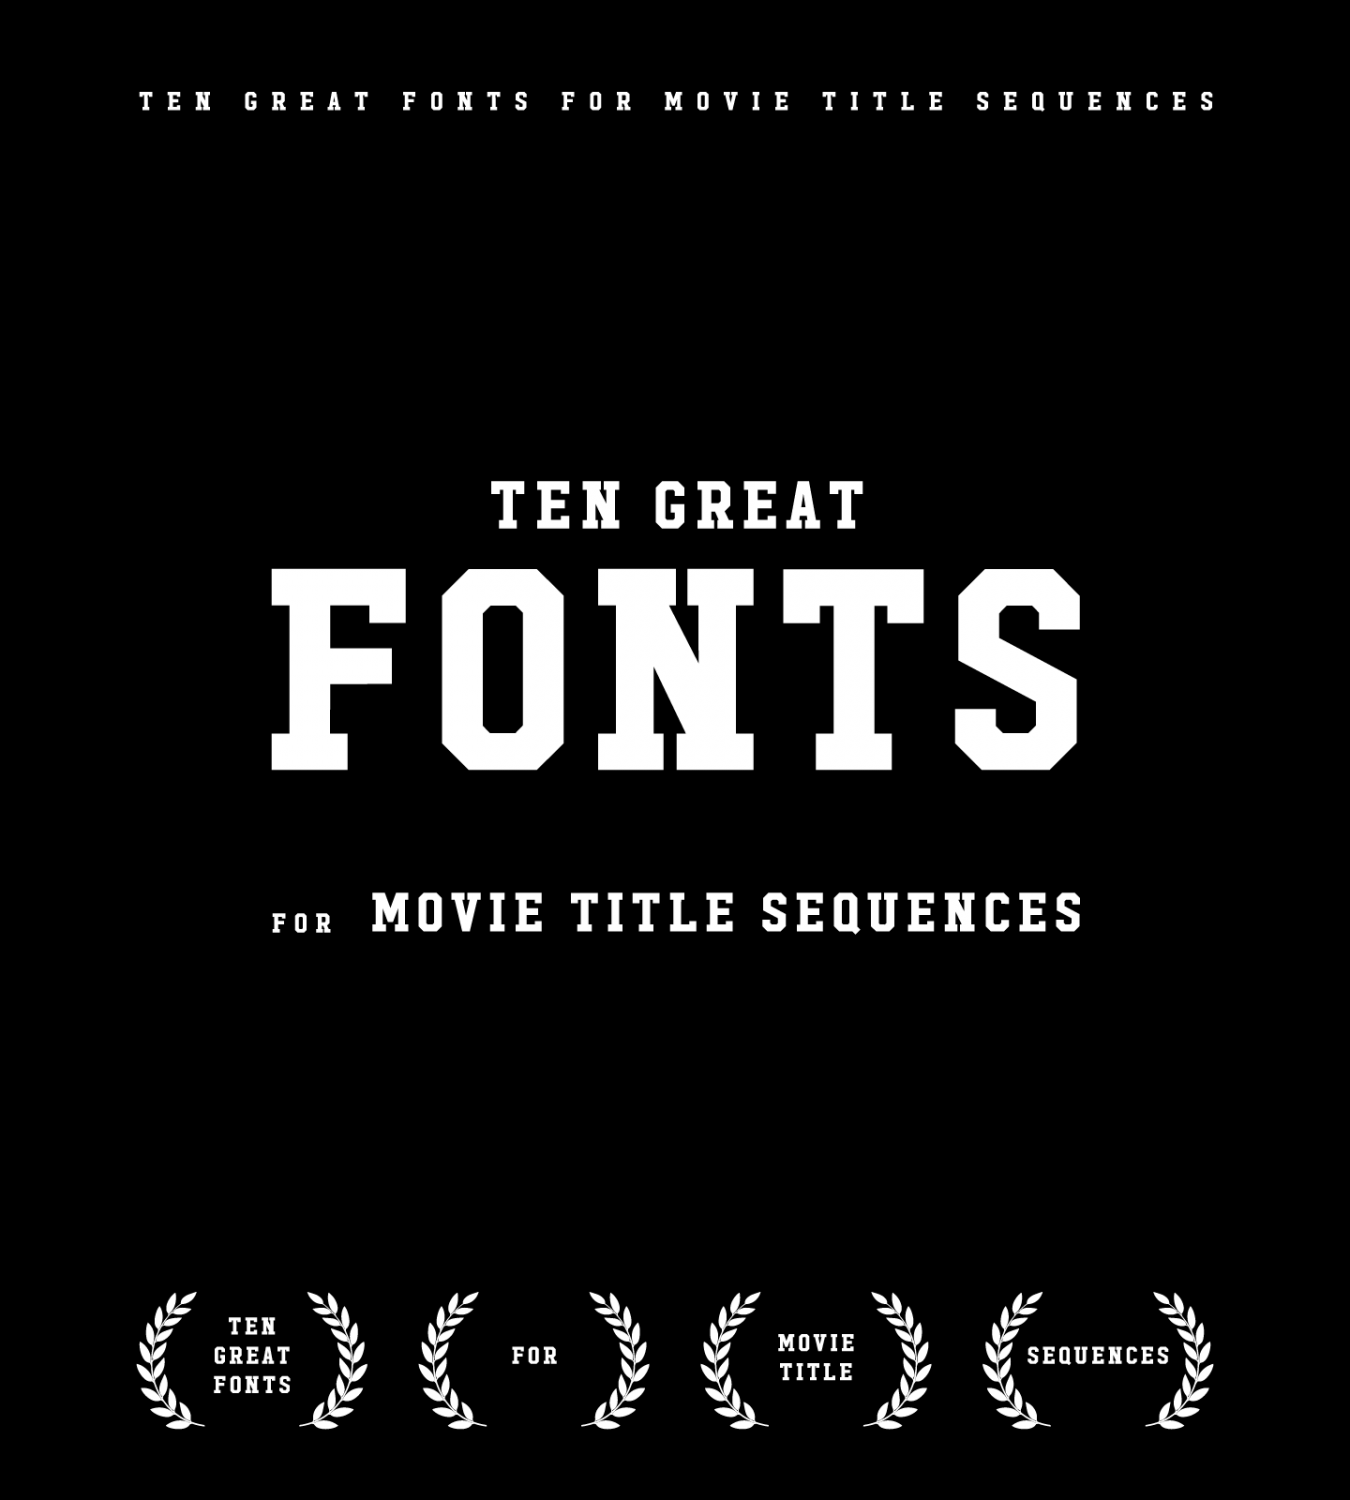 Ten Great Fonts For Movie Title Sequences